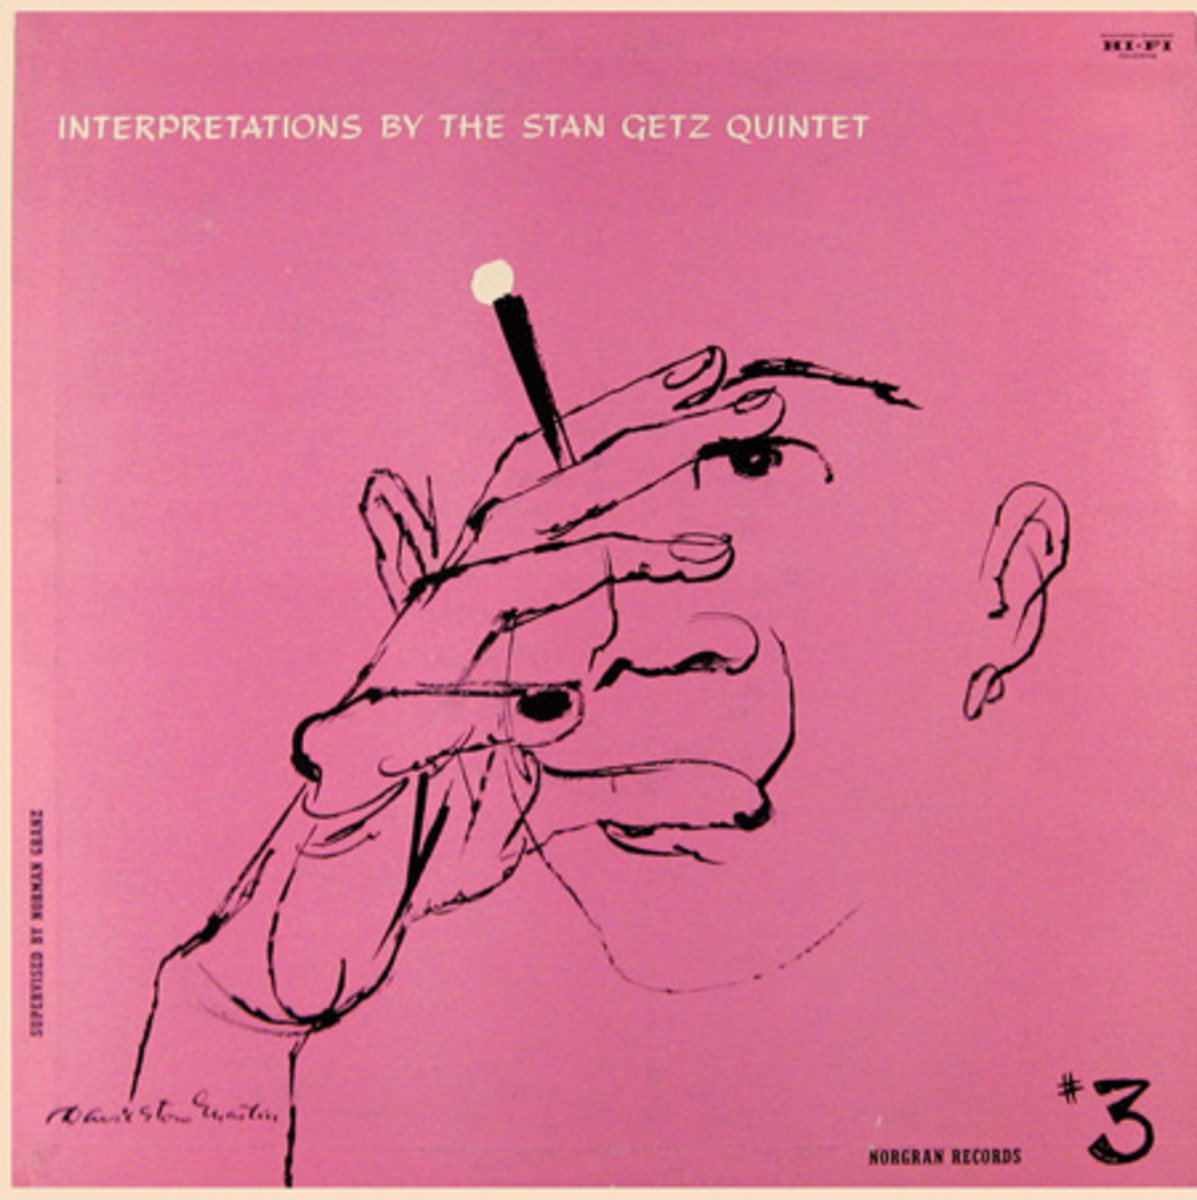 "Stan Getz ""Interpretations by the Stan Getz Quintet, vol. 3"" Norgran Records MG N 1029  12"" LP Vinyl Record (1955) Album Cover Art by David Stone Martin"